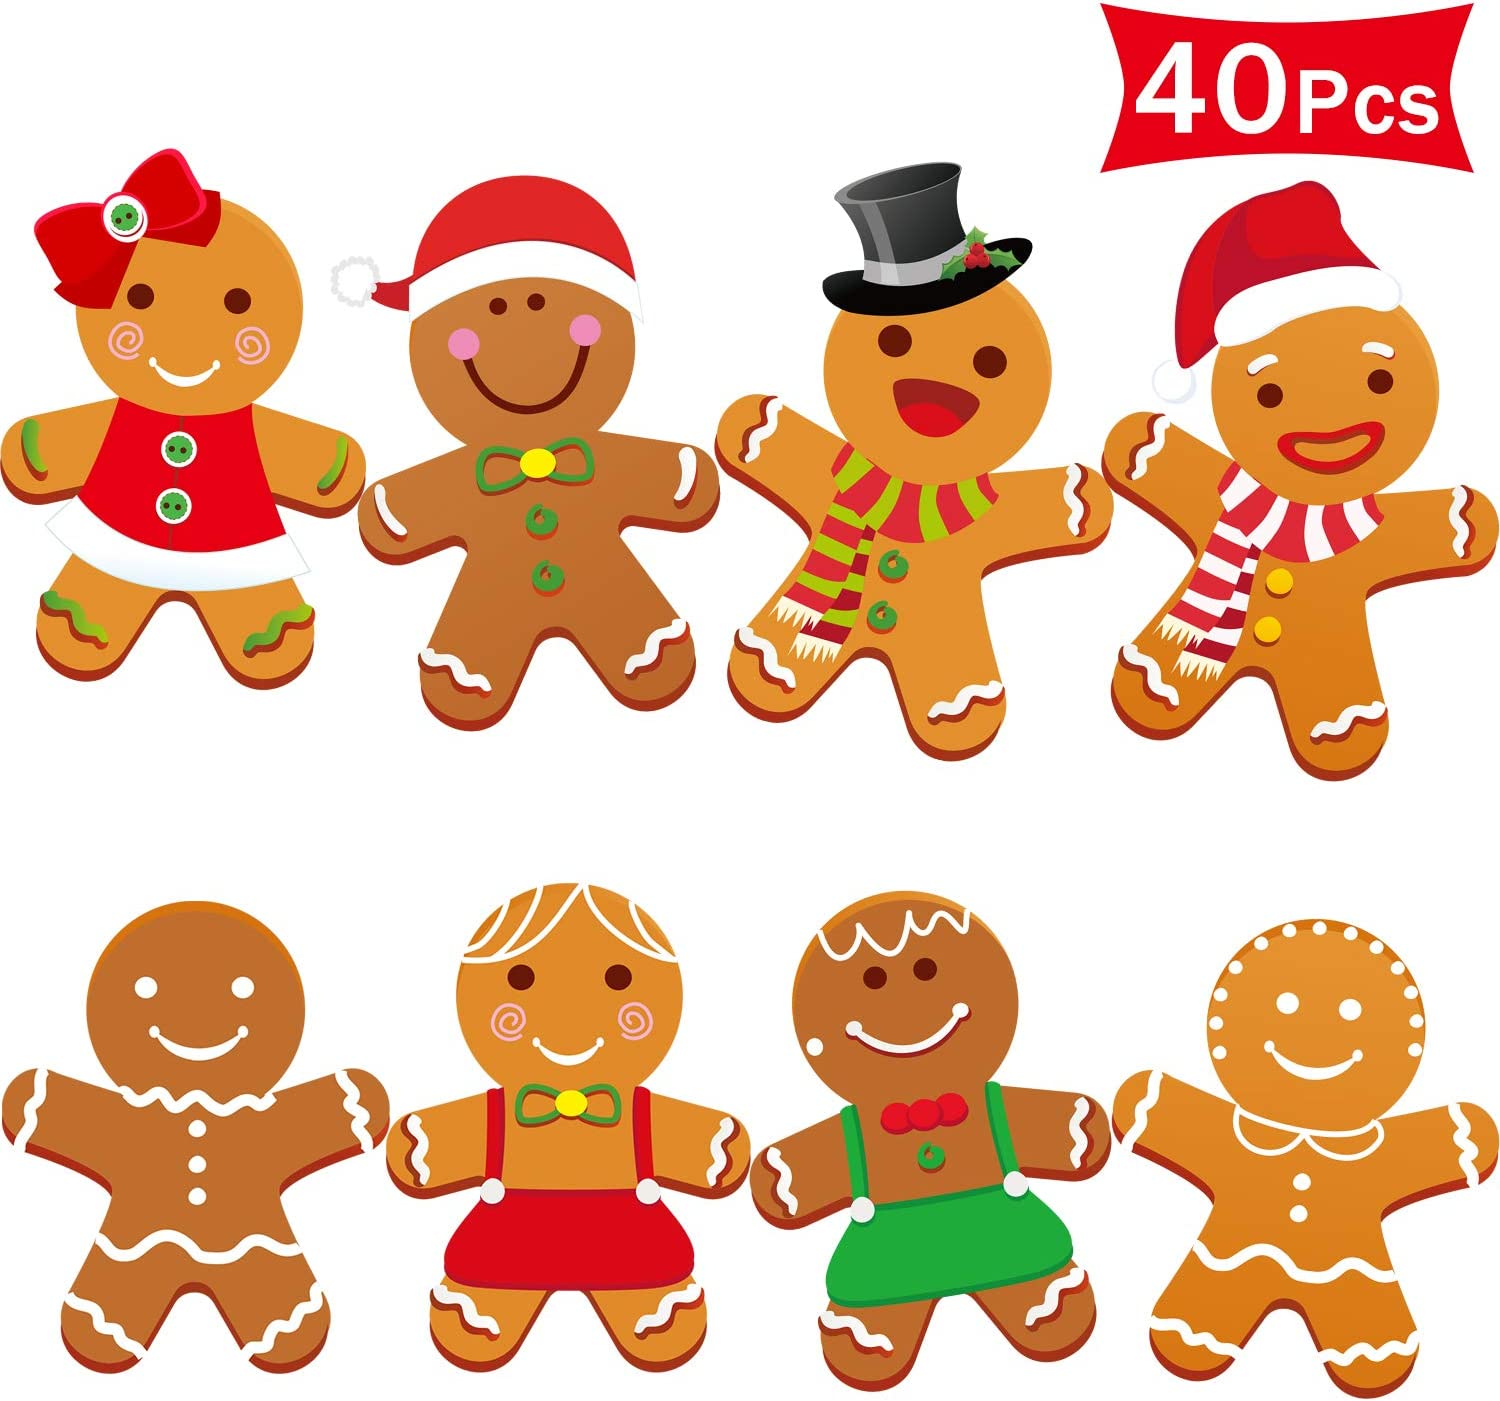 40 Pieces Winter Christmas Mini Gingerbread Cut-Outs Versatile Classroom Decoration Gingerbread Cut-Outs with Glue Point Dots for Winter Bulletin Board Classroom School Christmas Party, 5.9 x 5.9 Inch